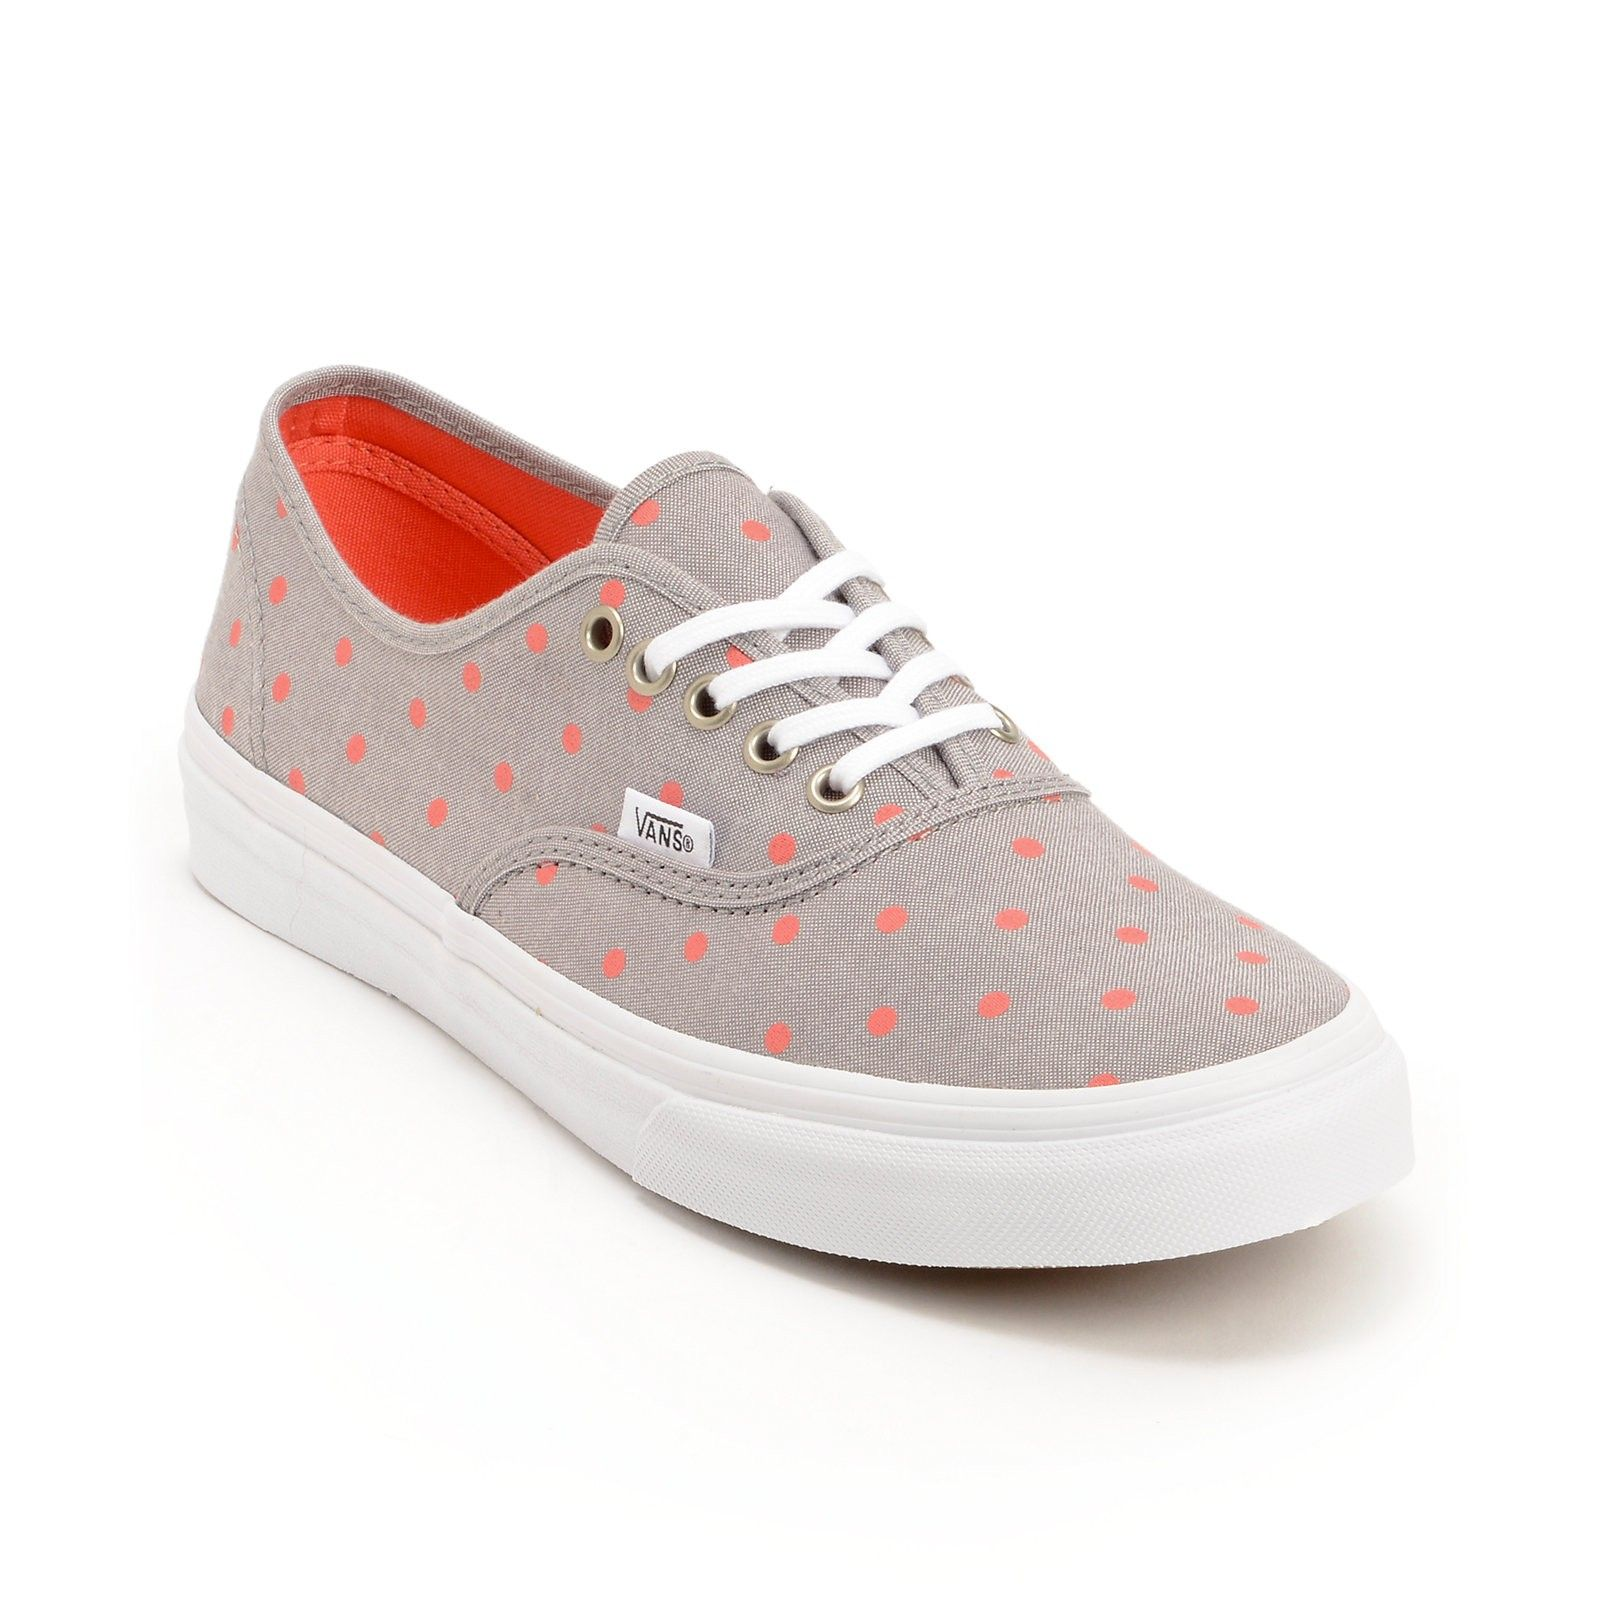 Polka Dot Shoes, Polka Dots, Vans Authentic, Purse, Sports Shoes, Gift  Ideas, Outfit, Waffle, Tennis Vans